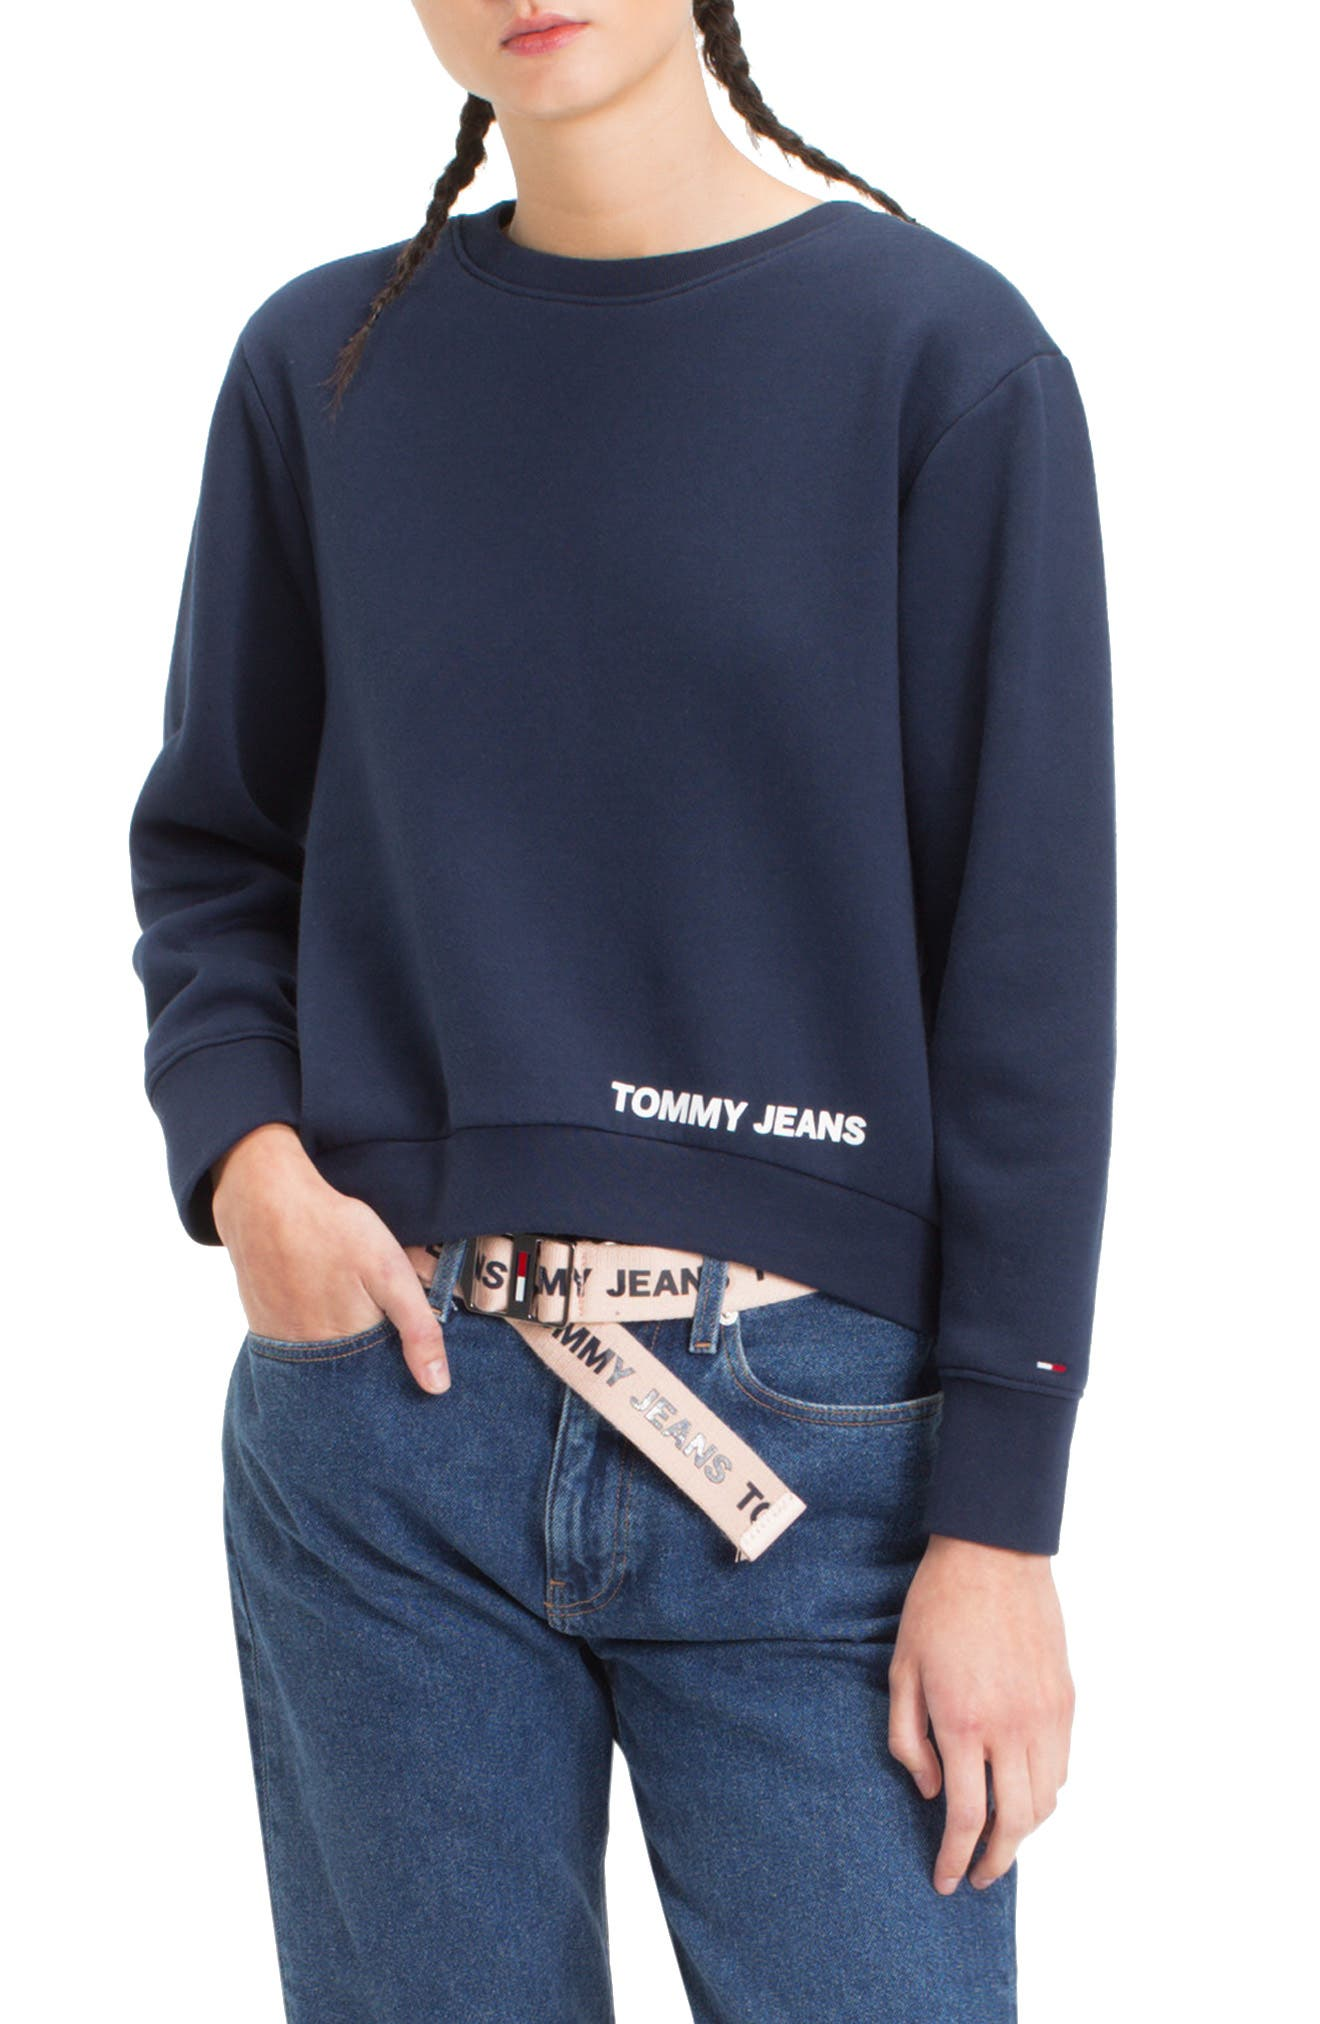 TOMMY JEANS,                             TJW Clean Logo Sweatshirt,                             Main thumbnail 1, color,                             002